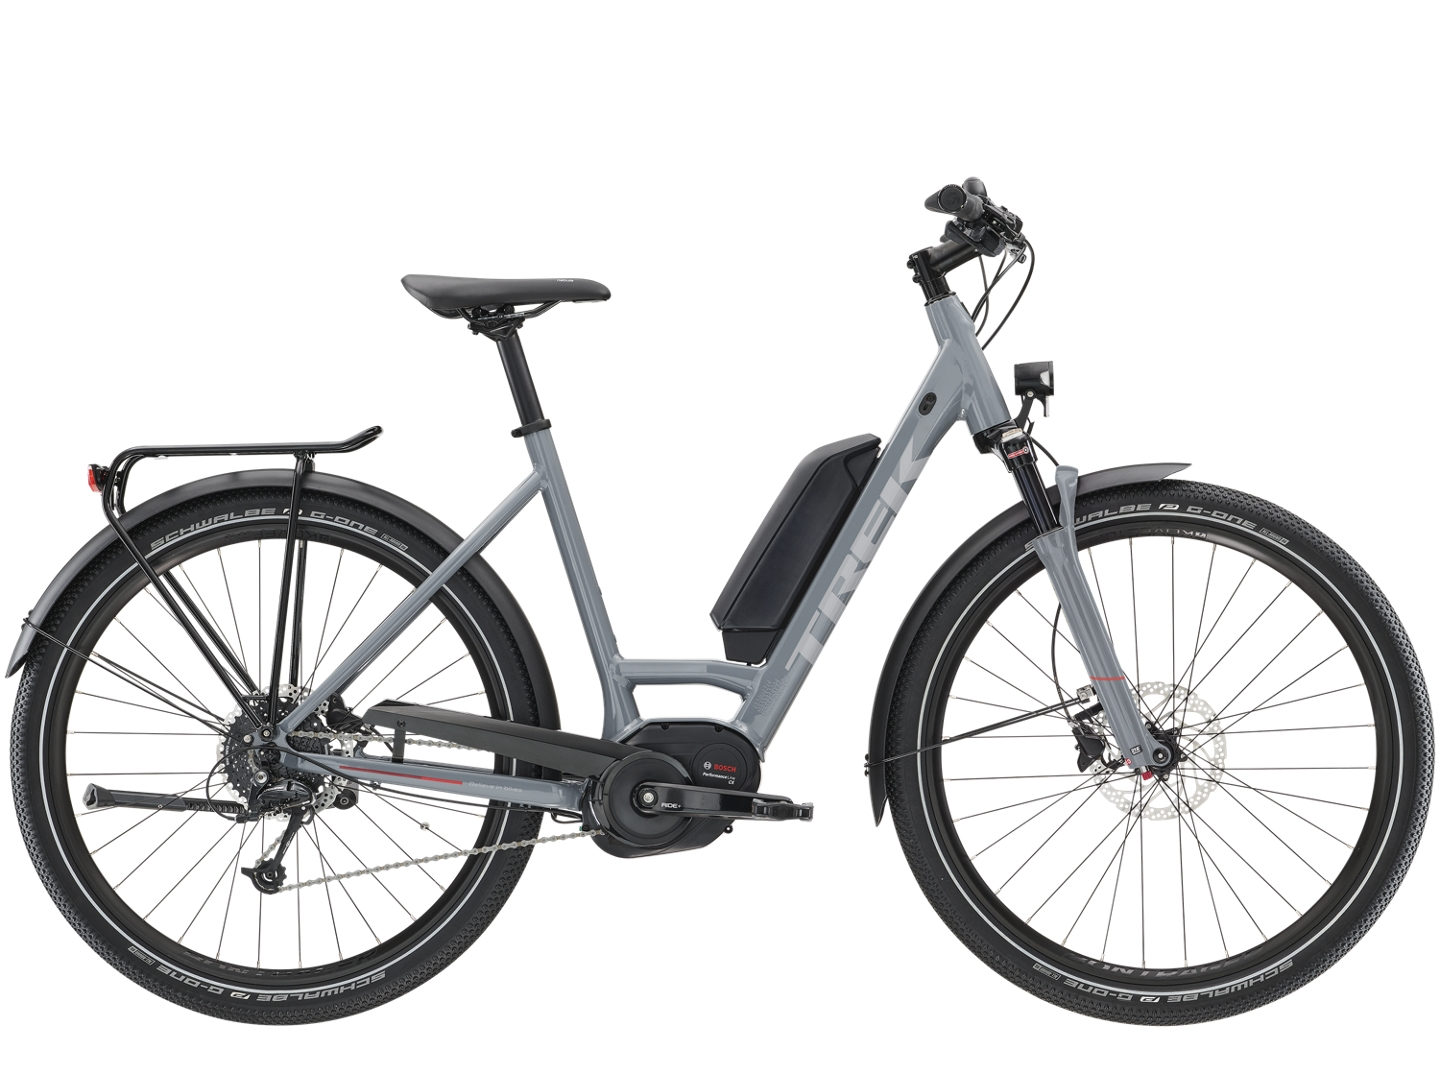 e356d58bf36 Trek UM5+ Lowstep 2019 Womens Hybrid E-bike Grey - Buy Online | Pedal  Revolution